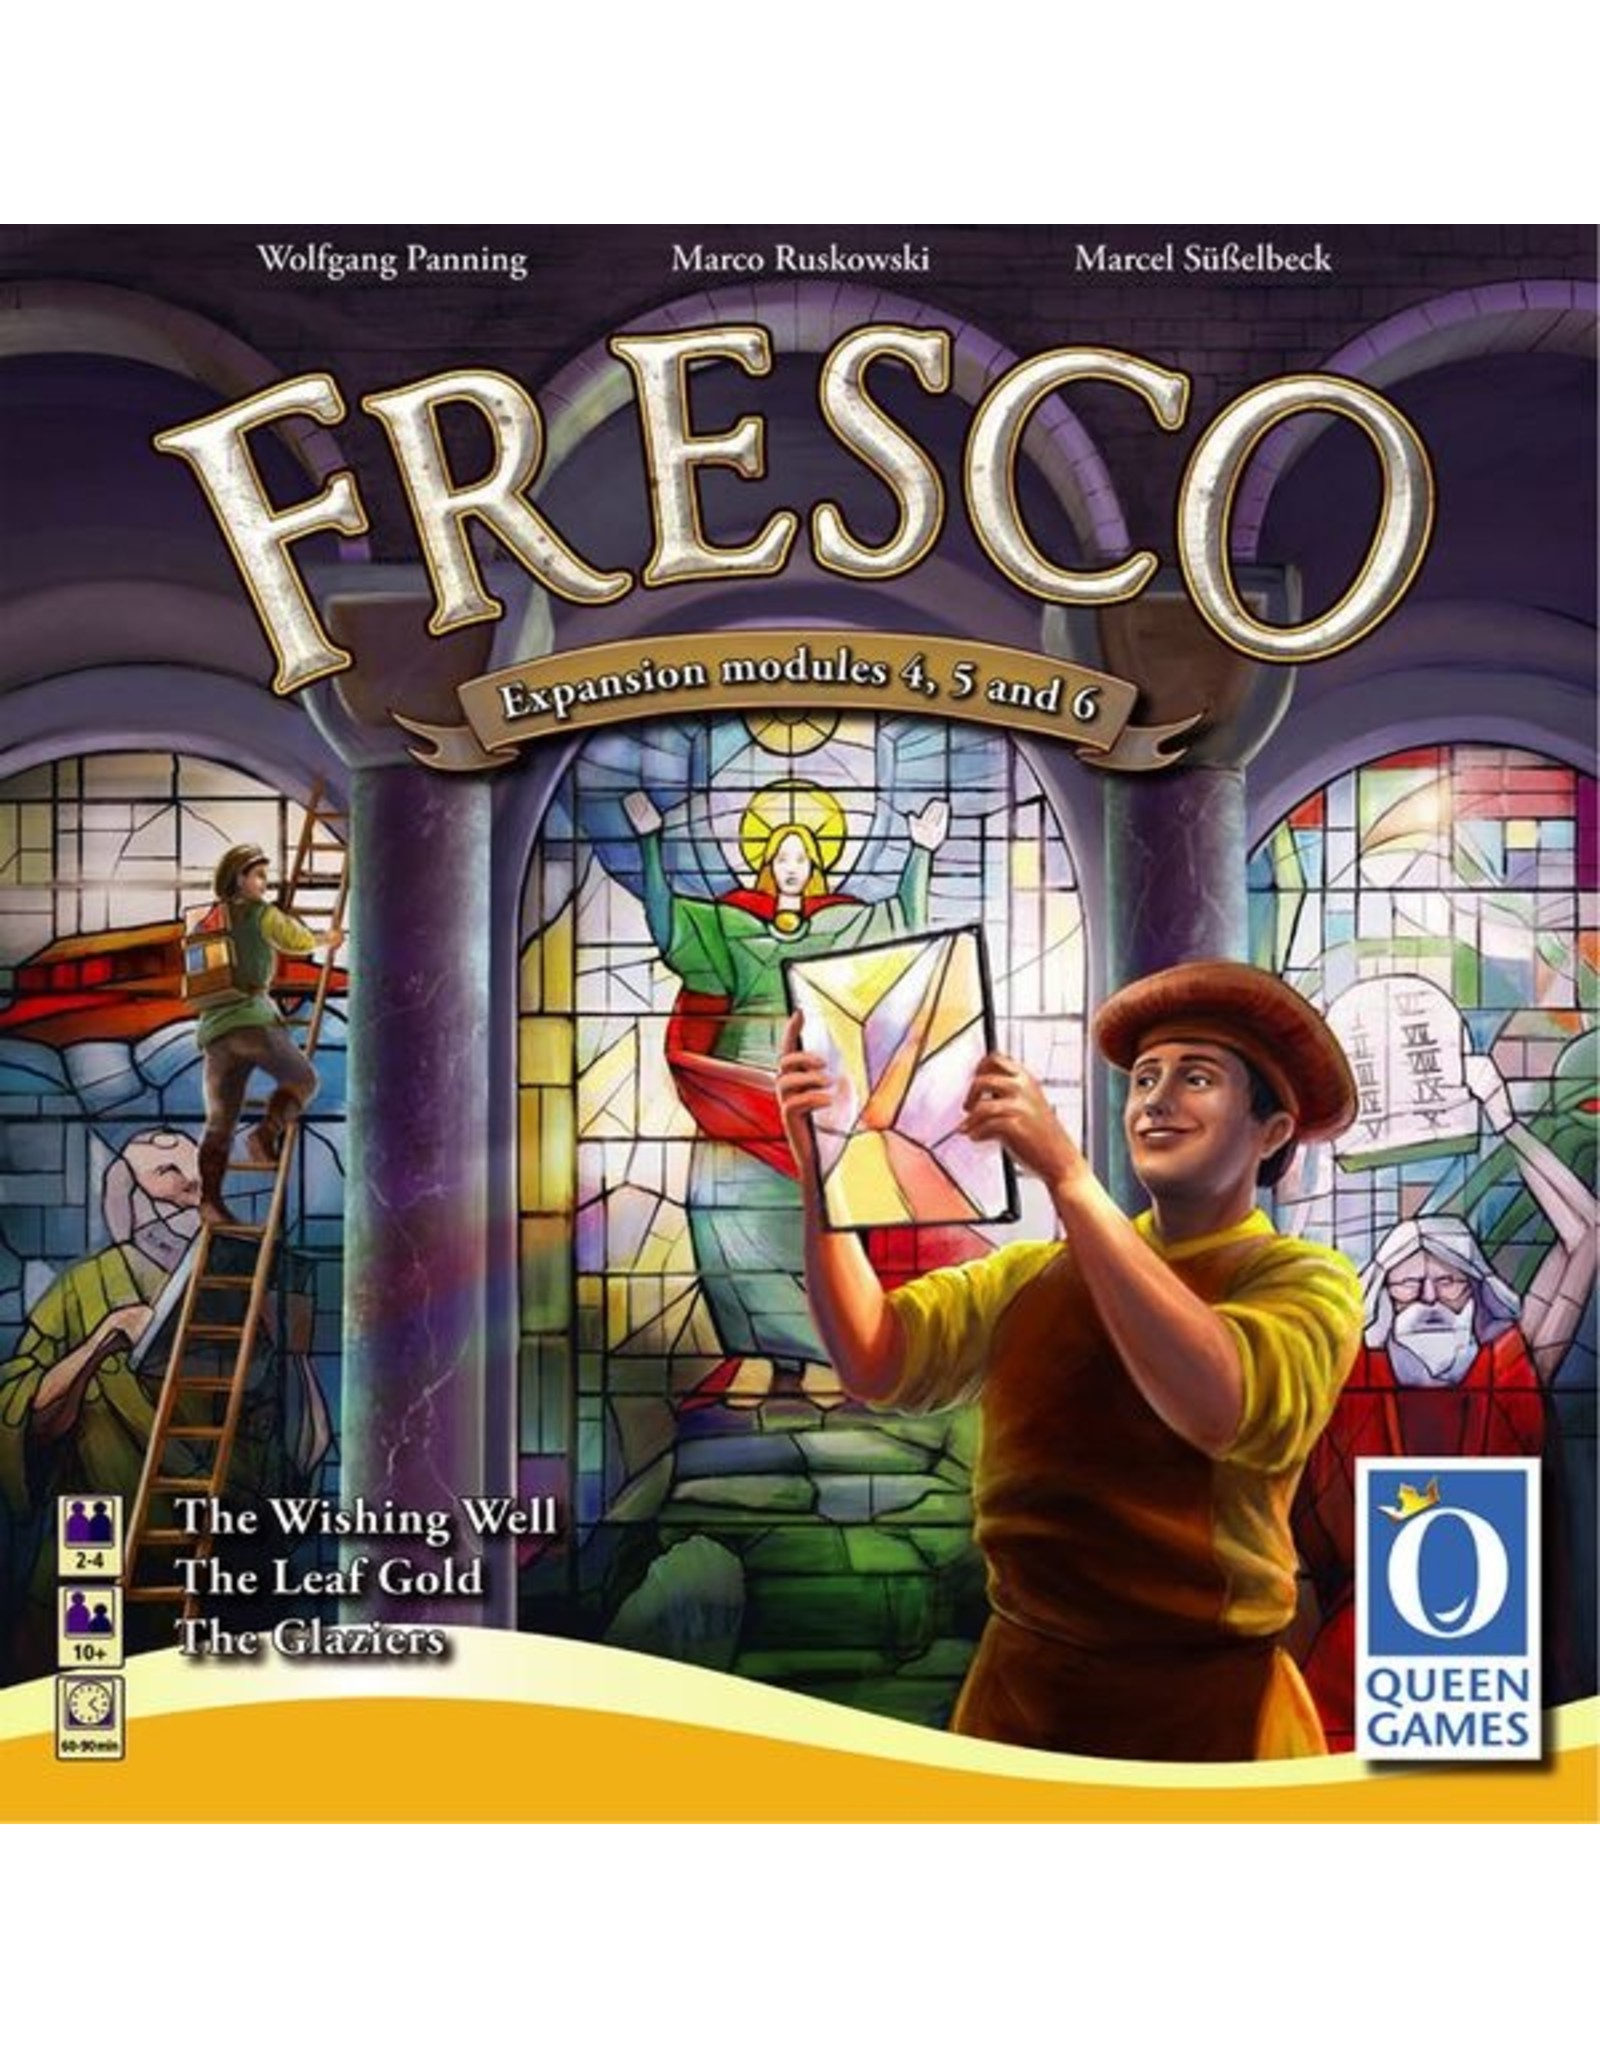 Queen Games Fresco: The Glaziers Expansion